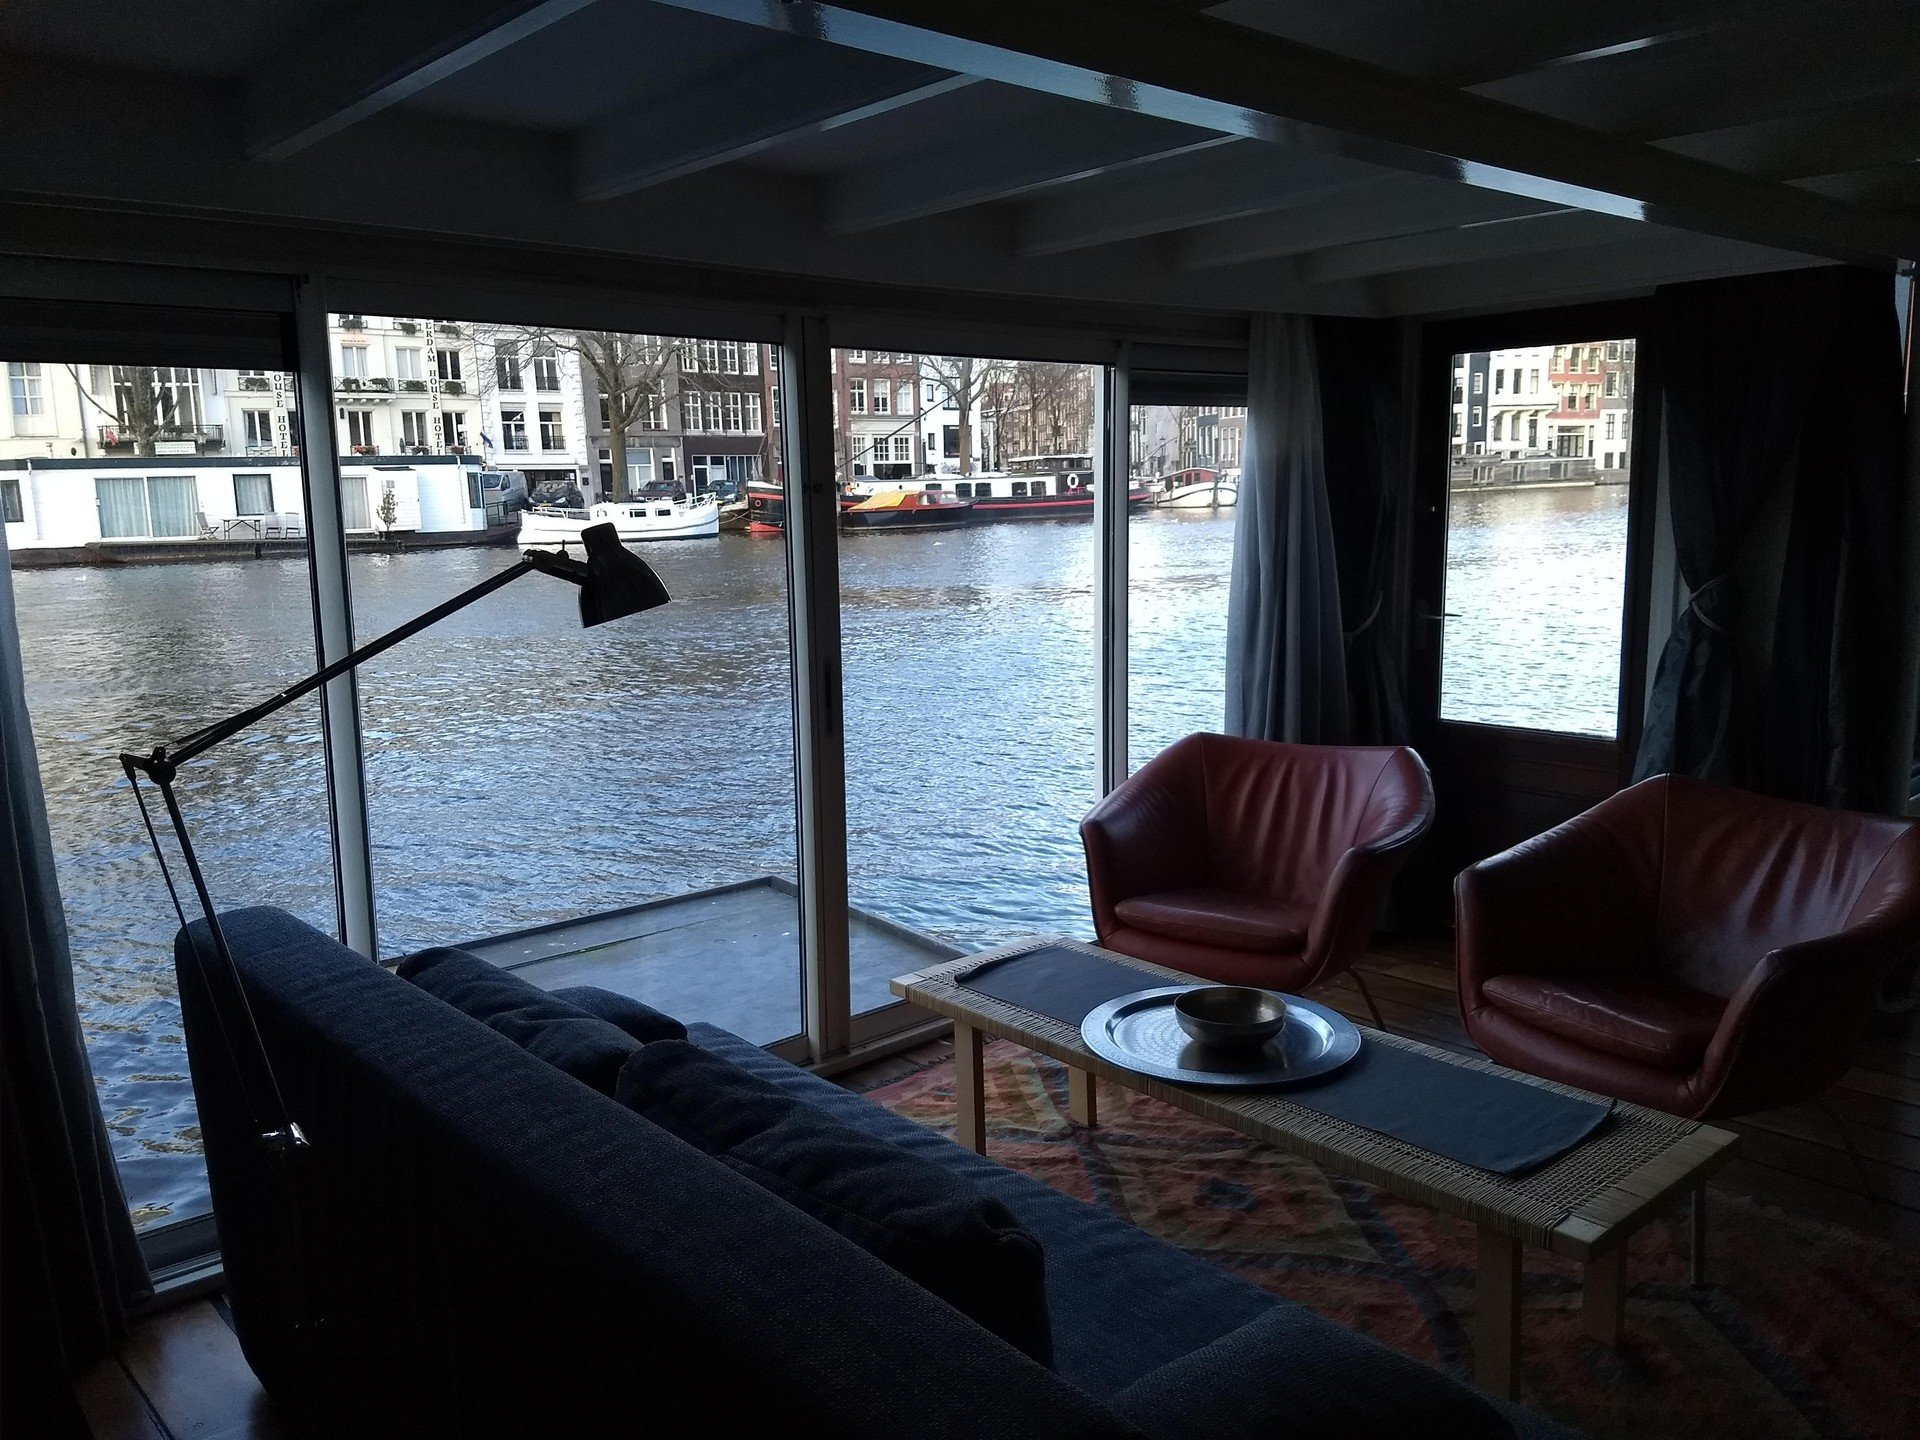 Amsterdam conference rooms Boot Rembrandt square houseboat image 20